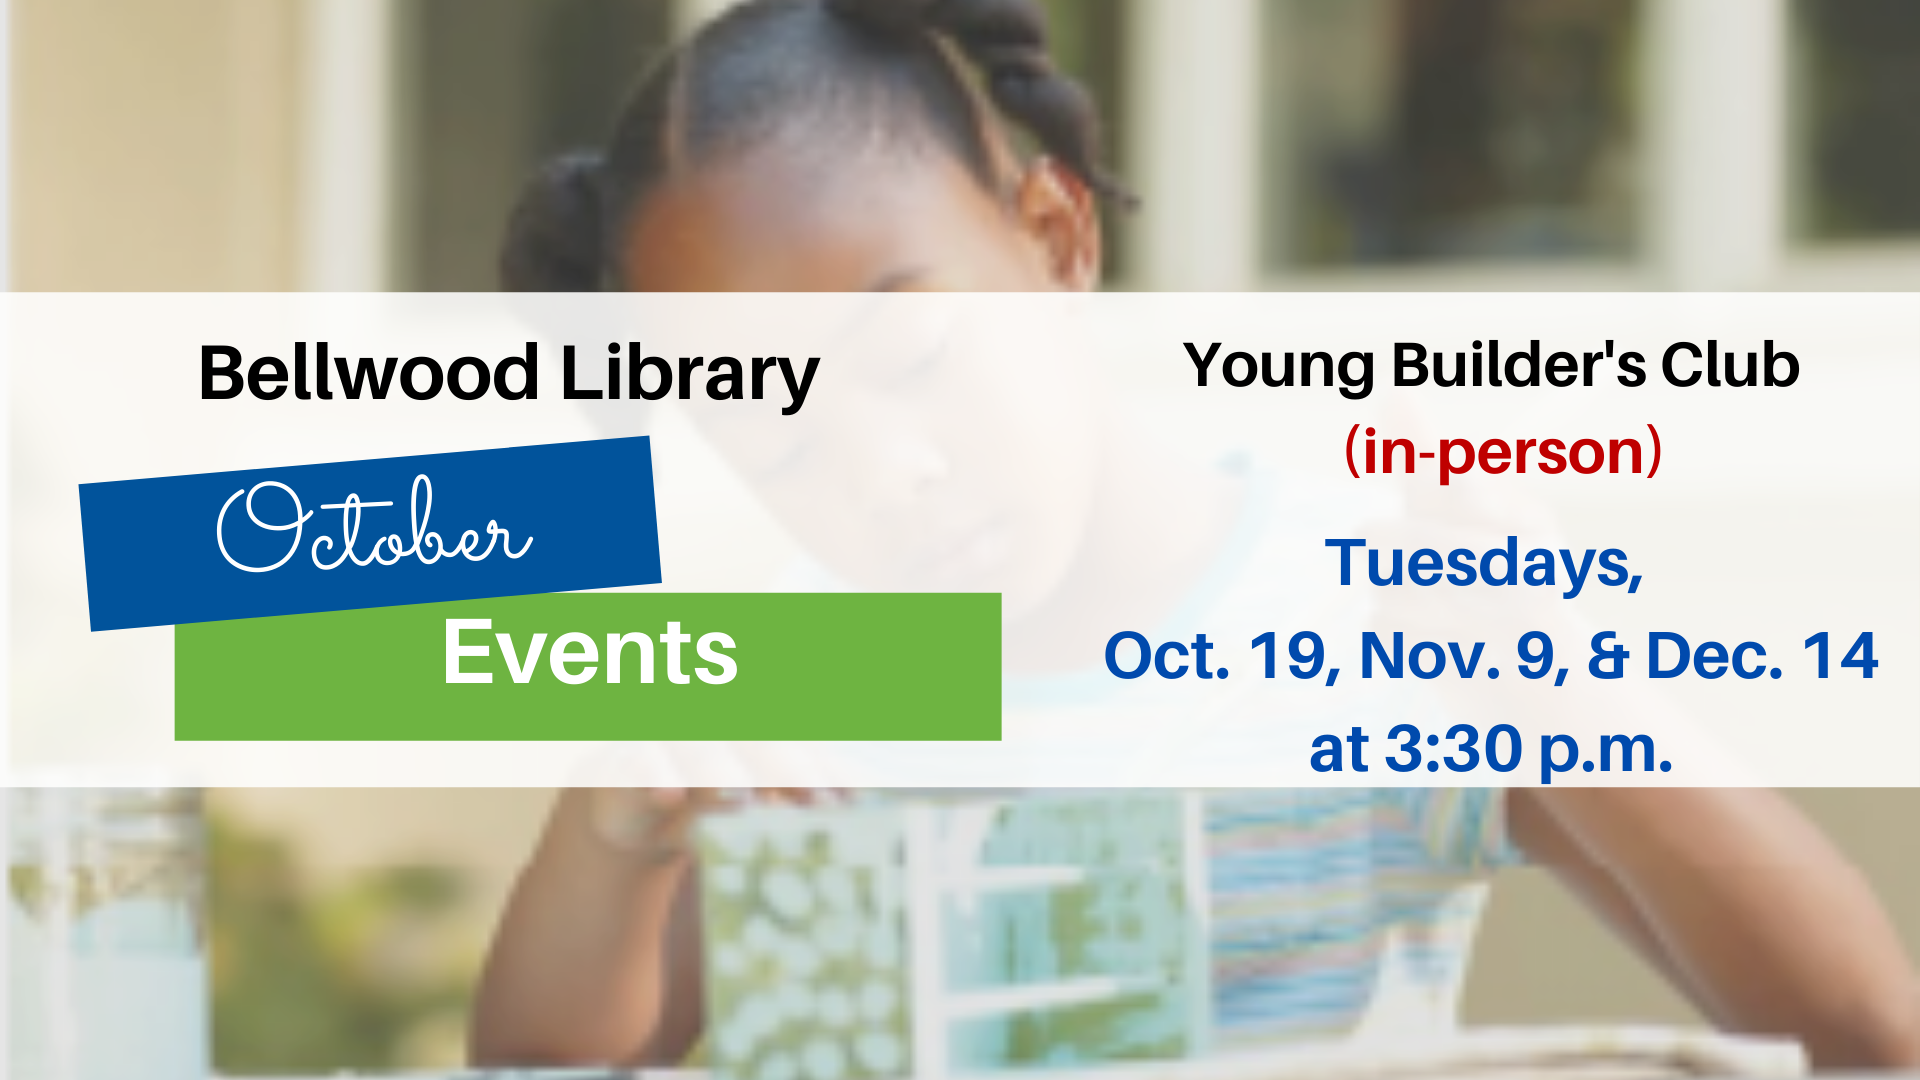 Young Builders Club (in-person)